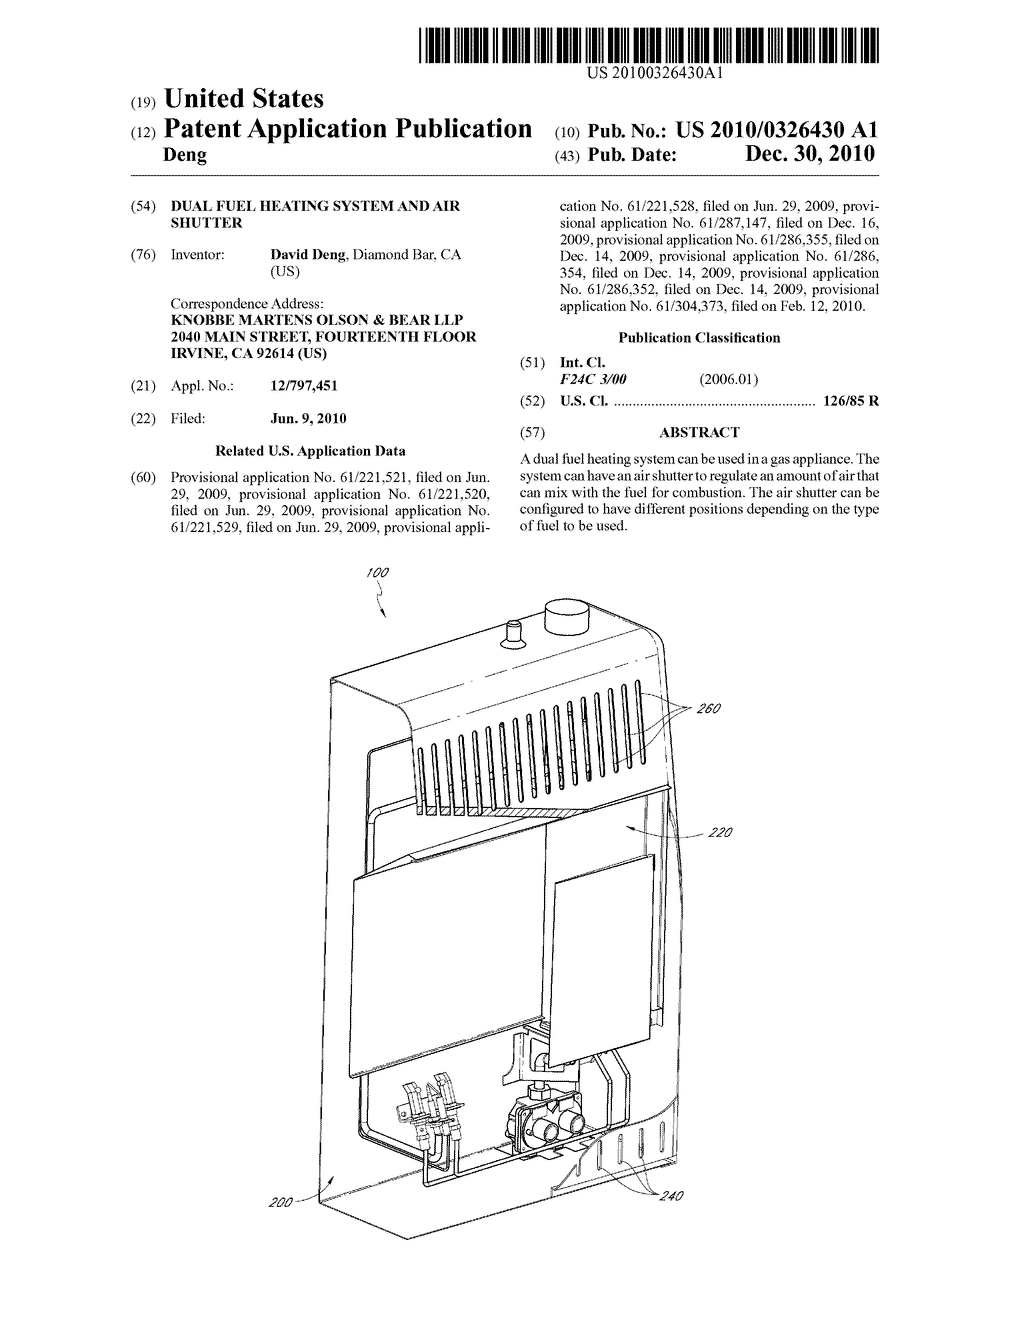 DUAL FUEL HEATING SYSTEM AND AIR SHUTTER - diagram, schematic, and image 01